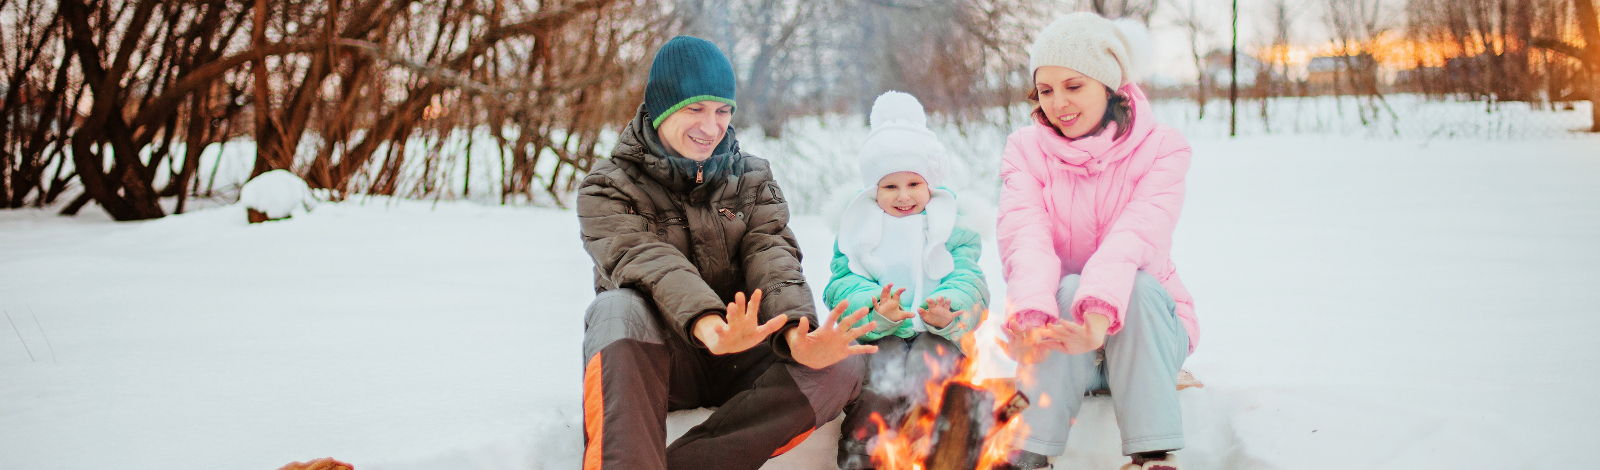 Dad, mom and child outdoors winter in front of campfire